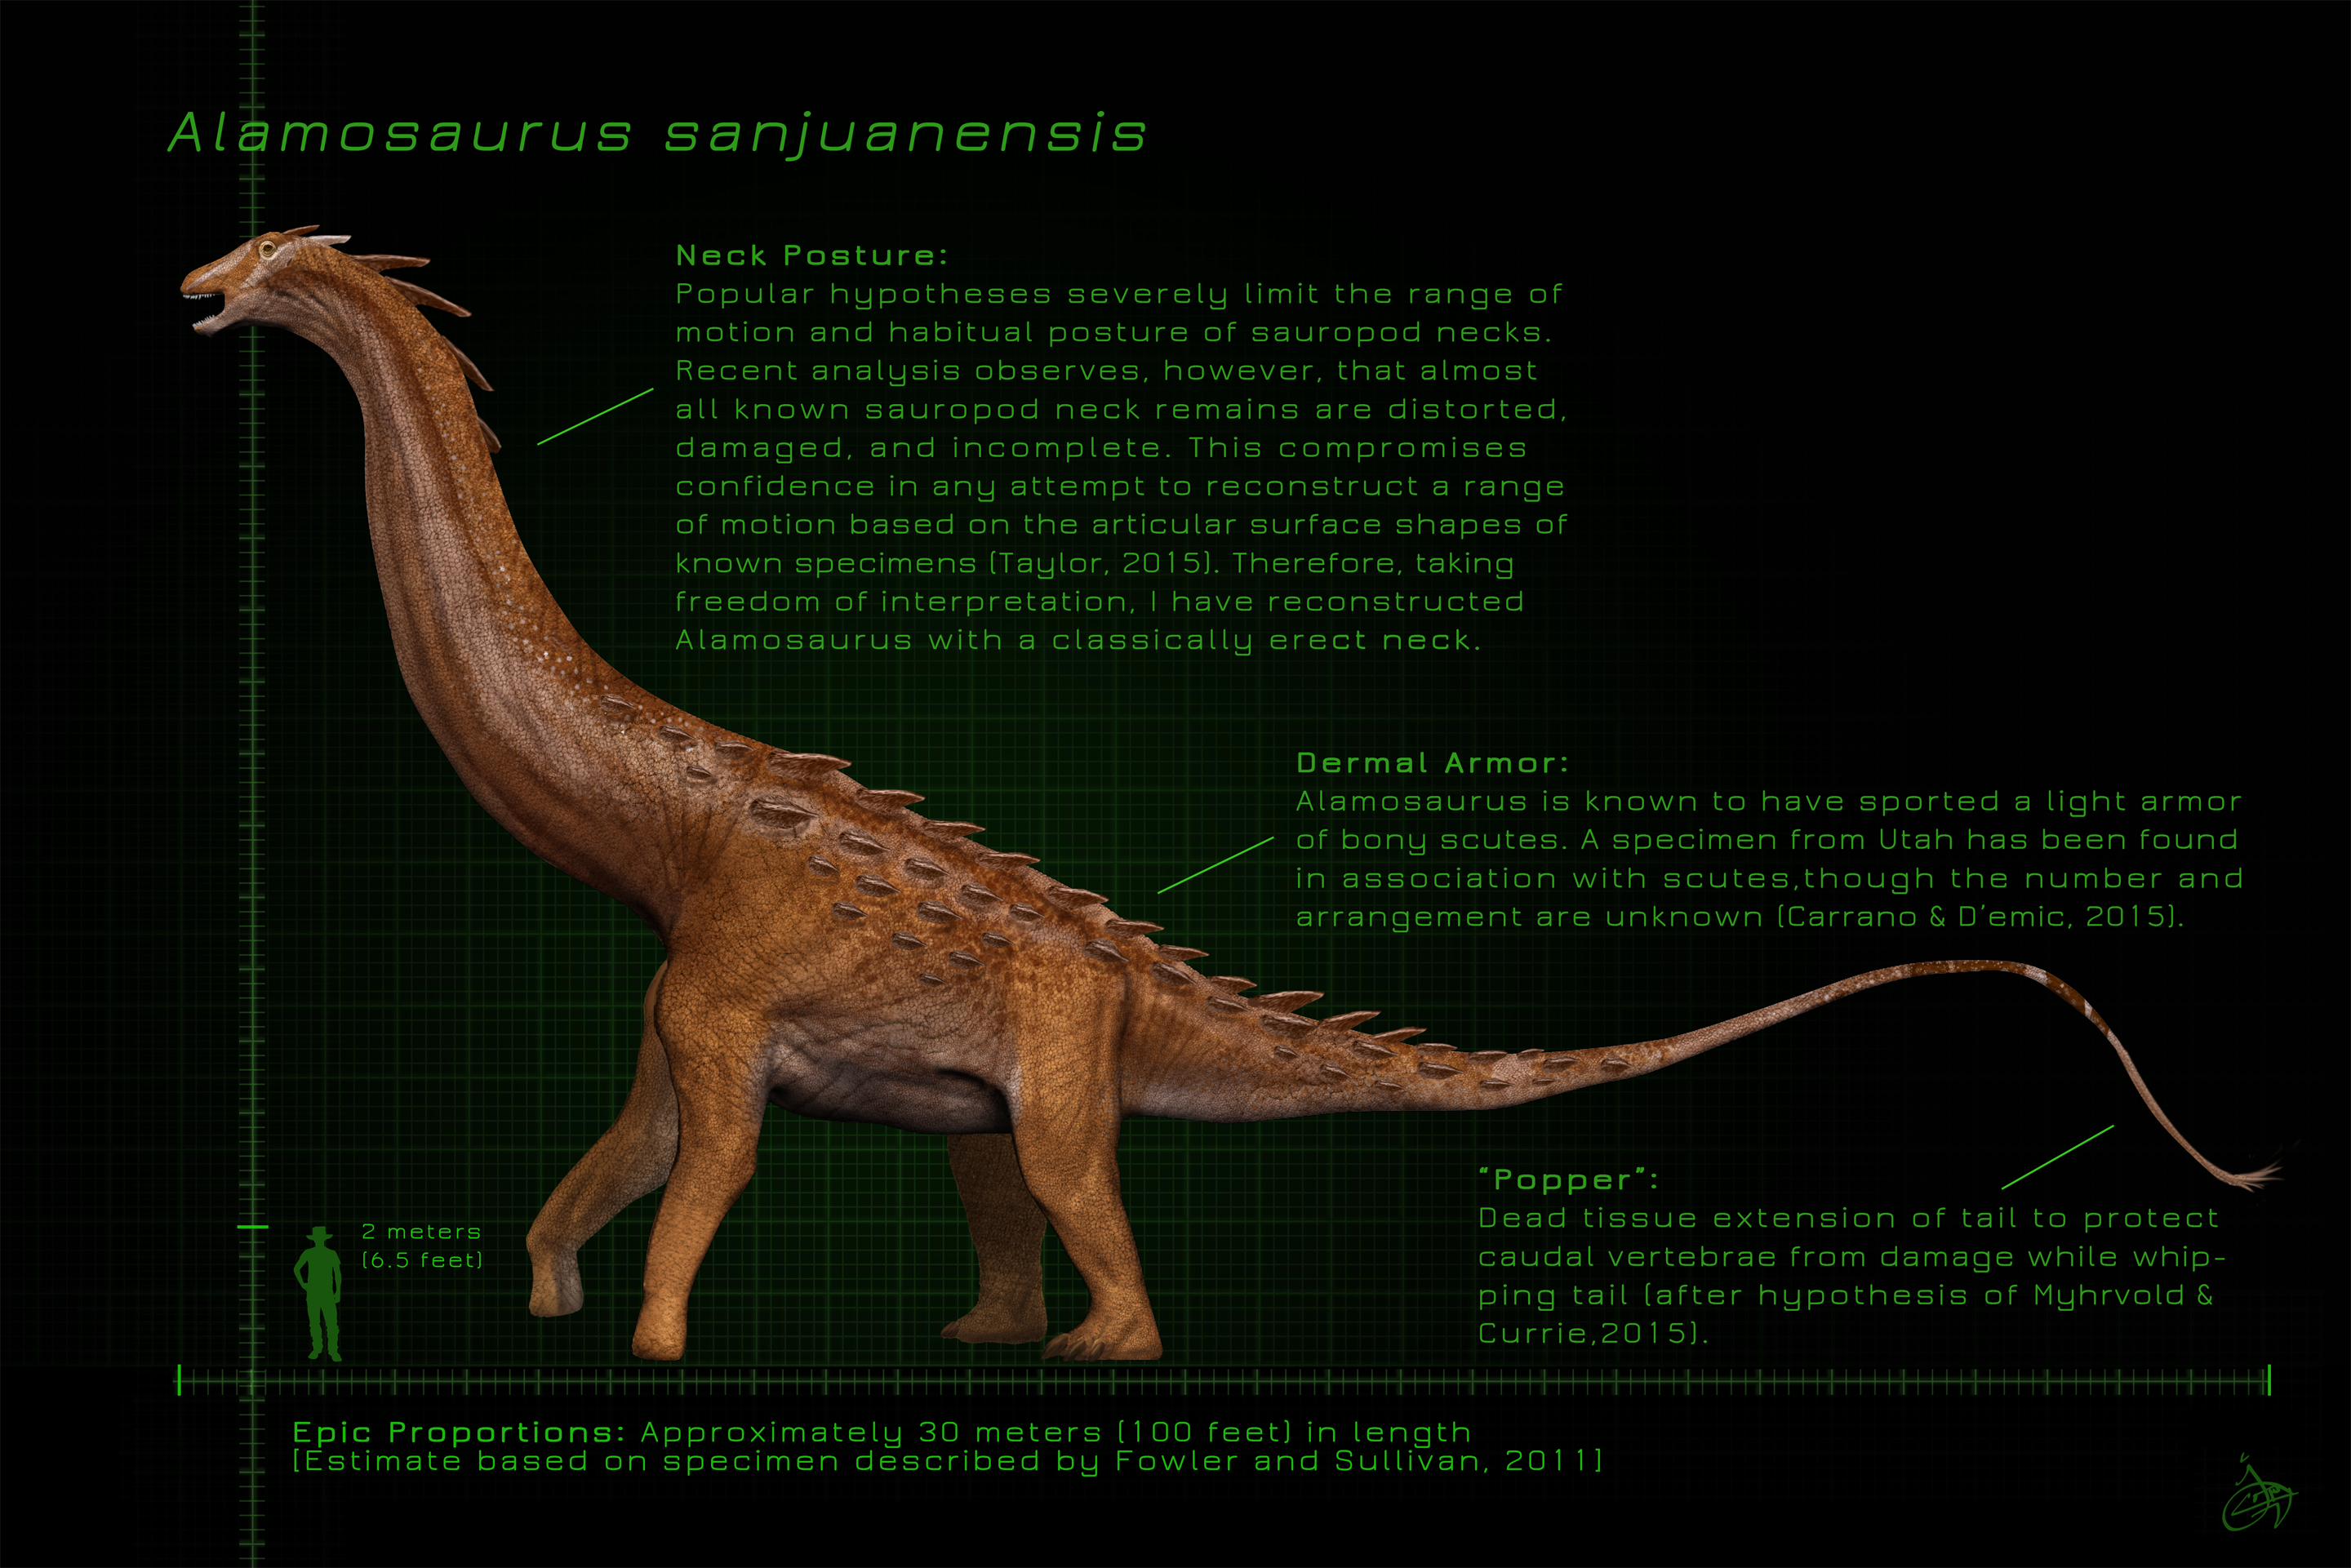 Alamosaurus with armor